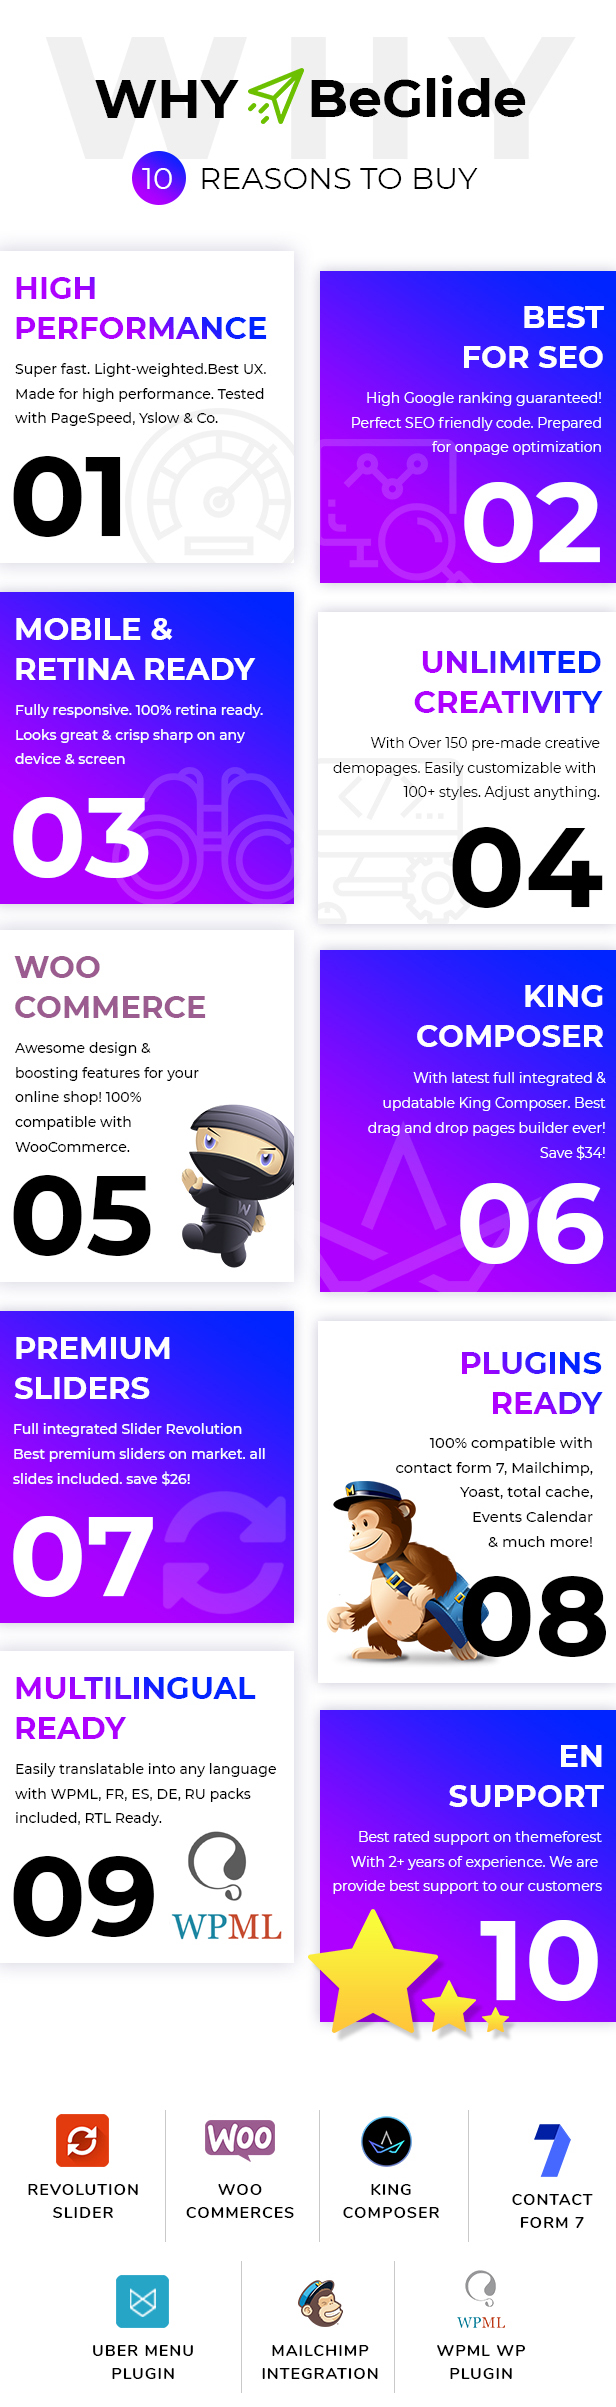 BeGlide: Corporate Business Consultant Agency WordPress Theme - 11